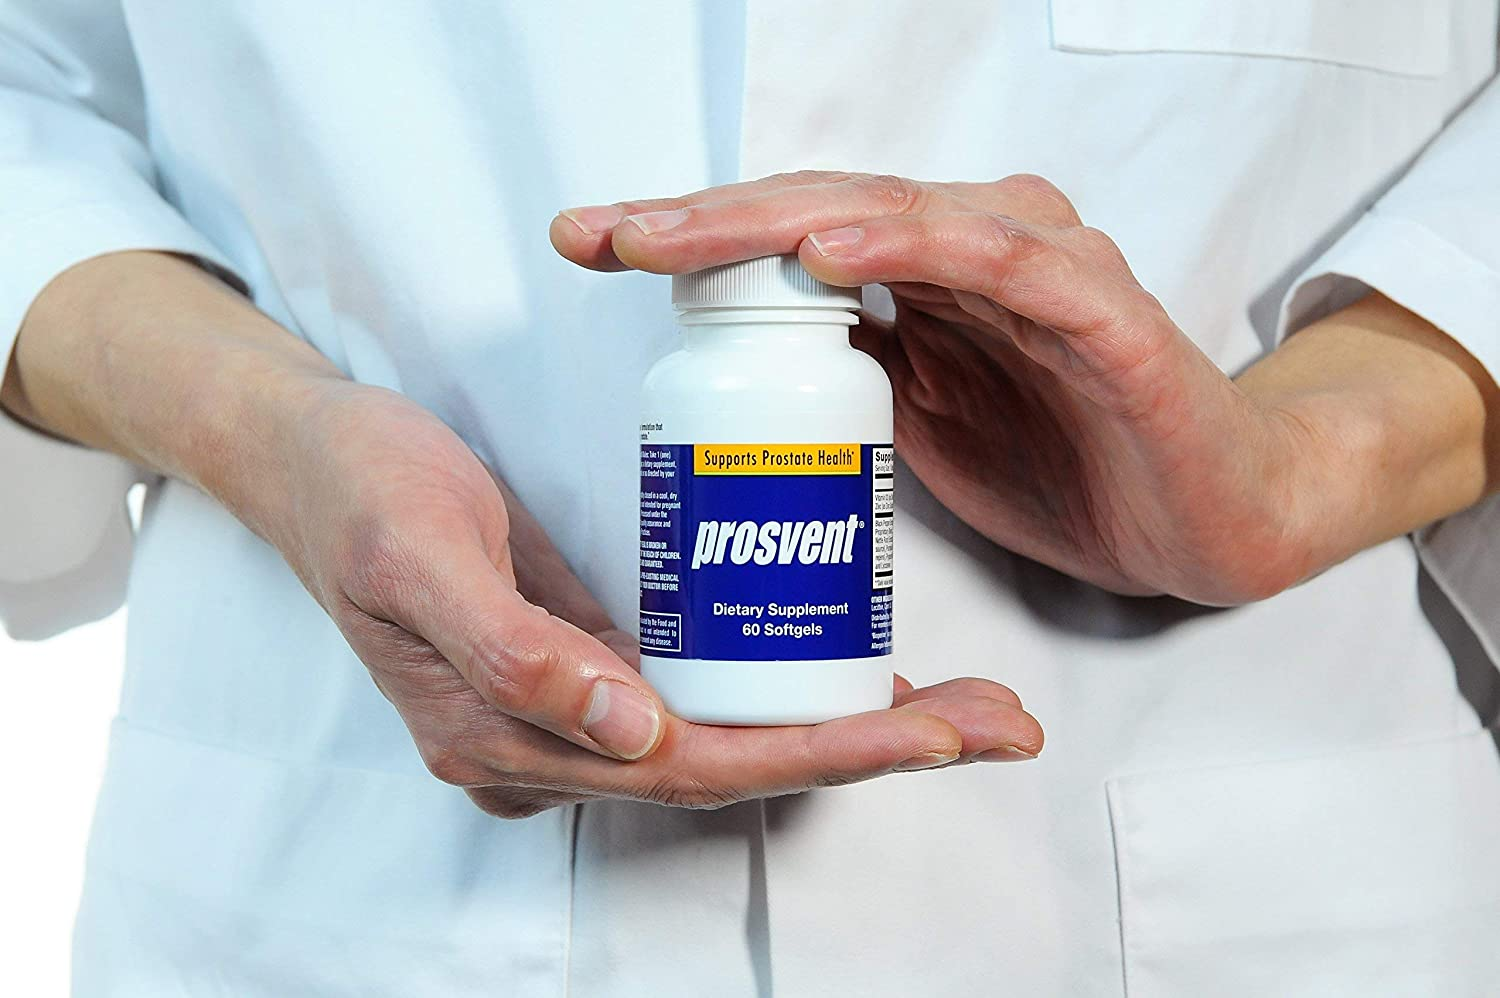 Prosvent Dietary Supplement For Prostate Health Review